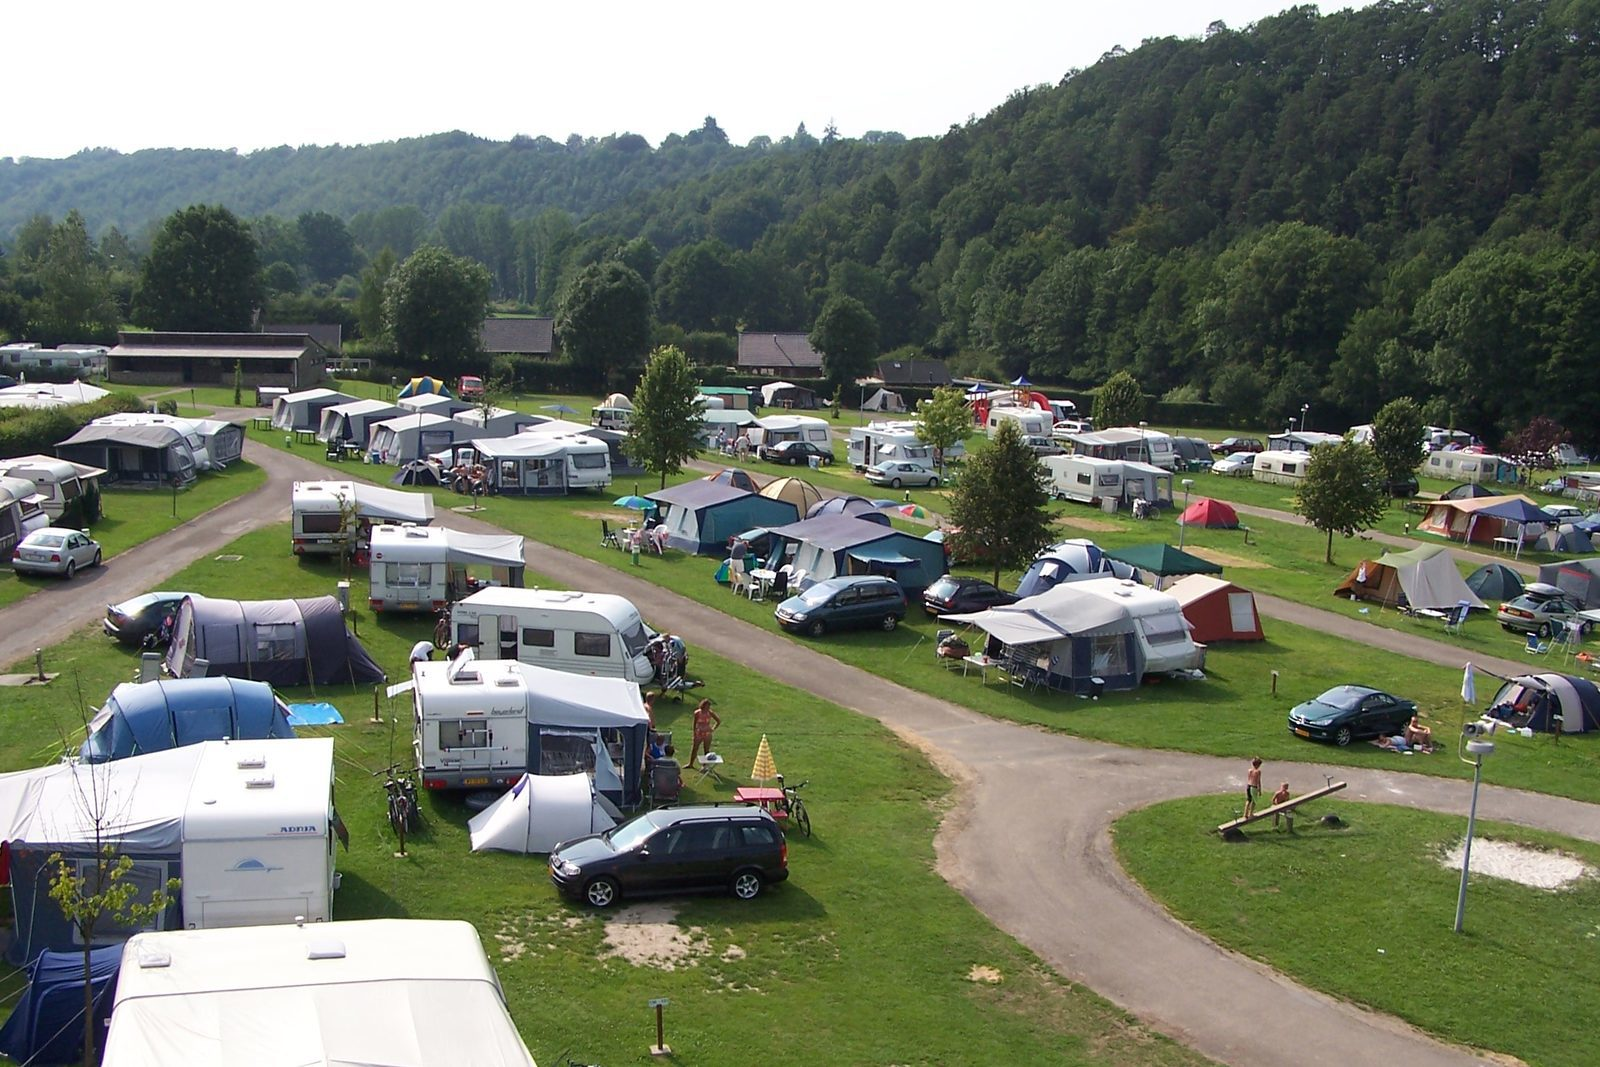 Camping in the Ardennes